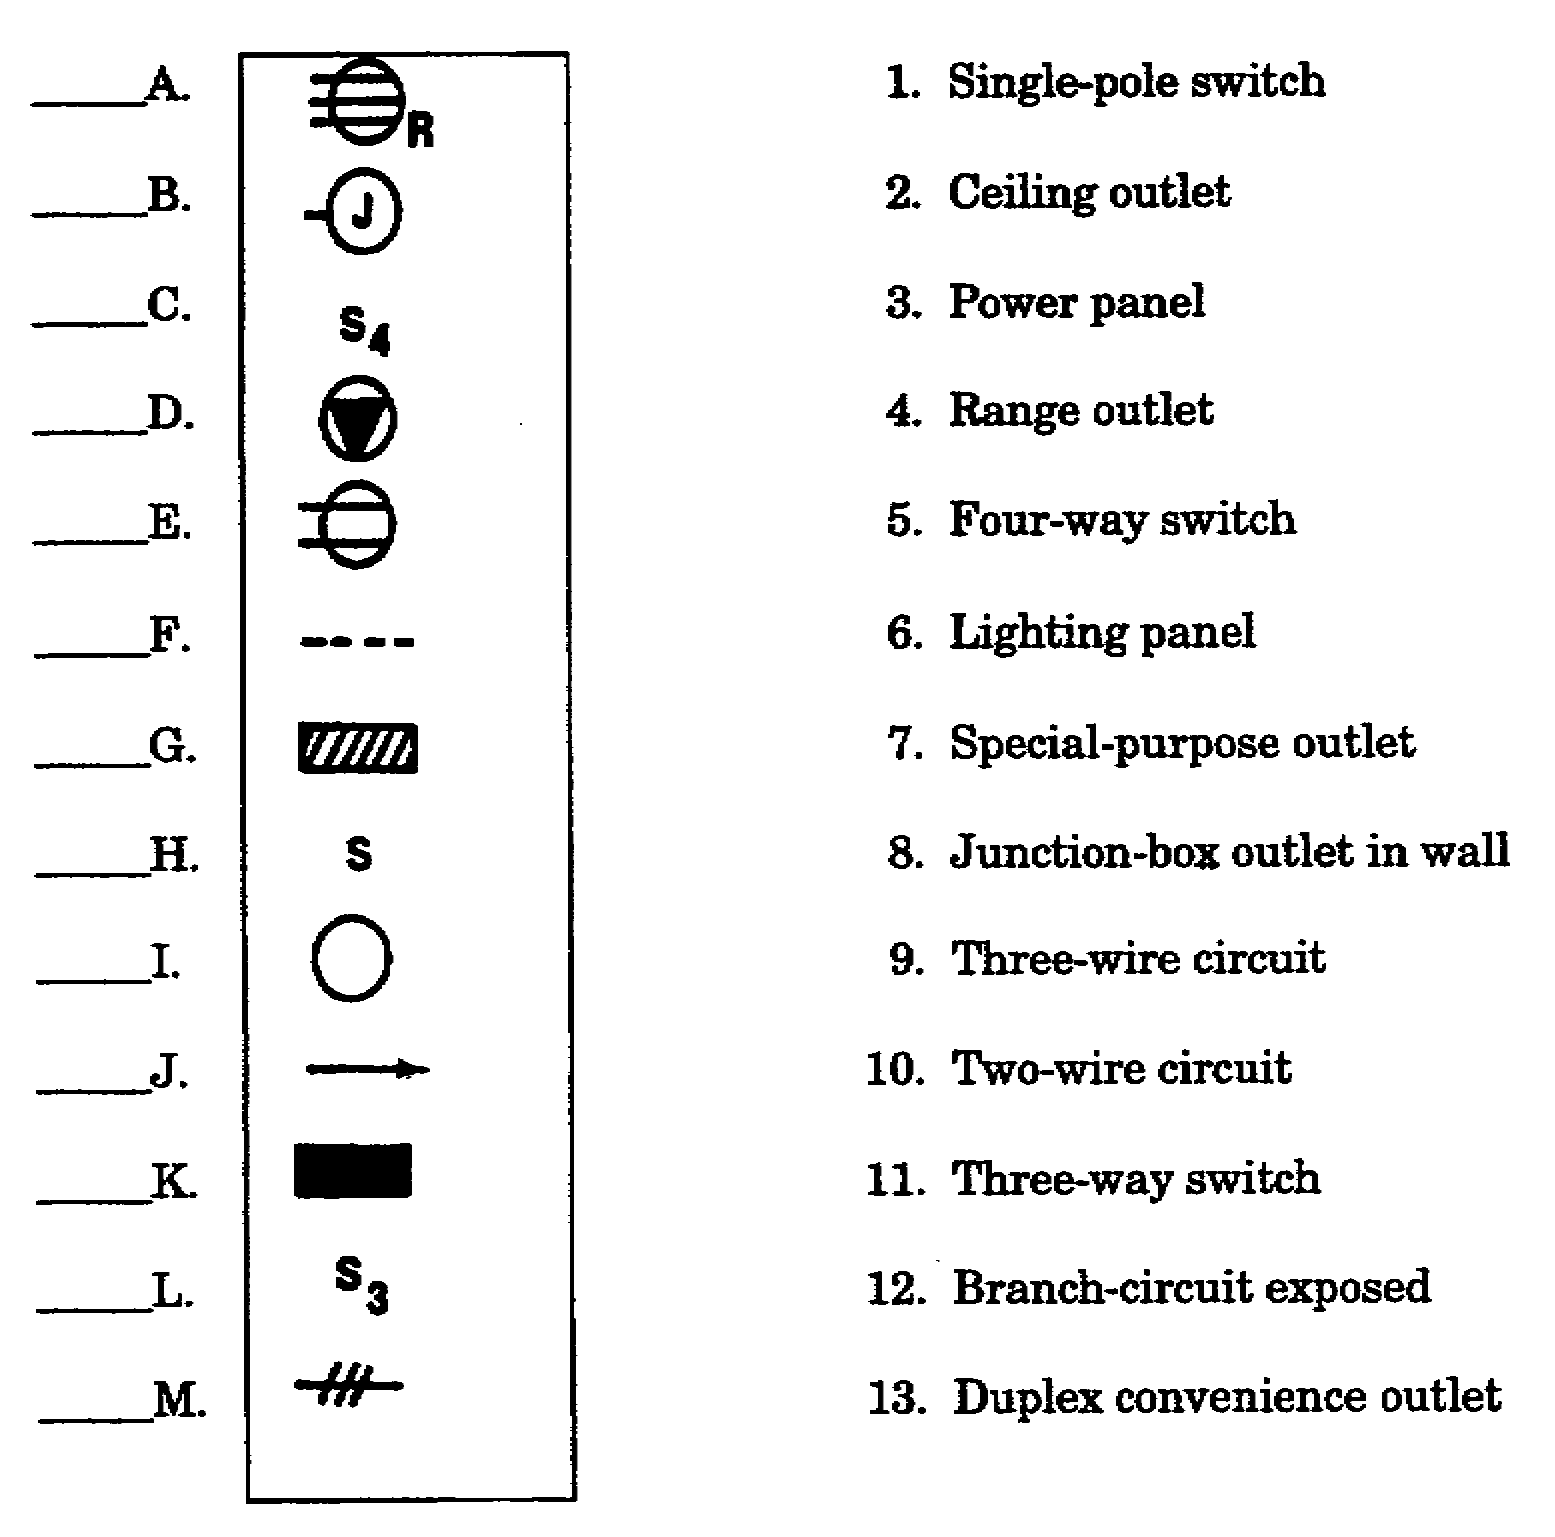 Wiring Schematic Symbols As Well As Electrical Outlet Symbols